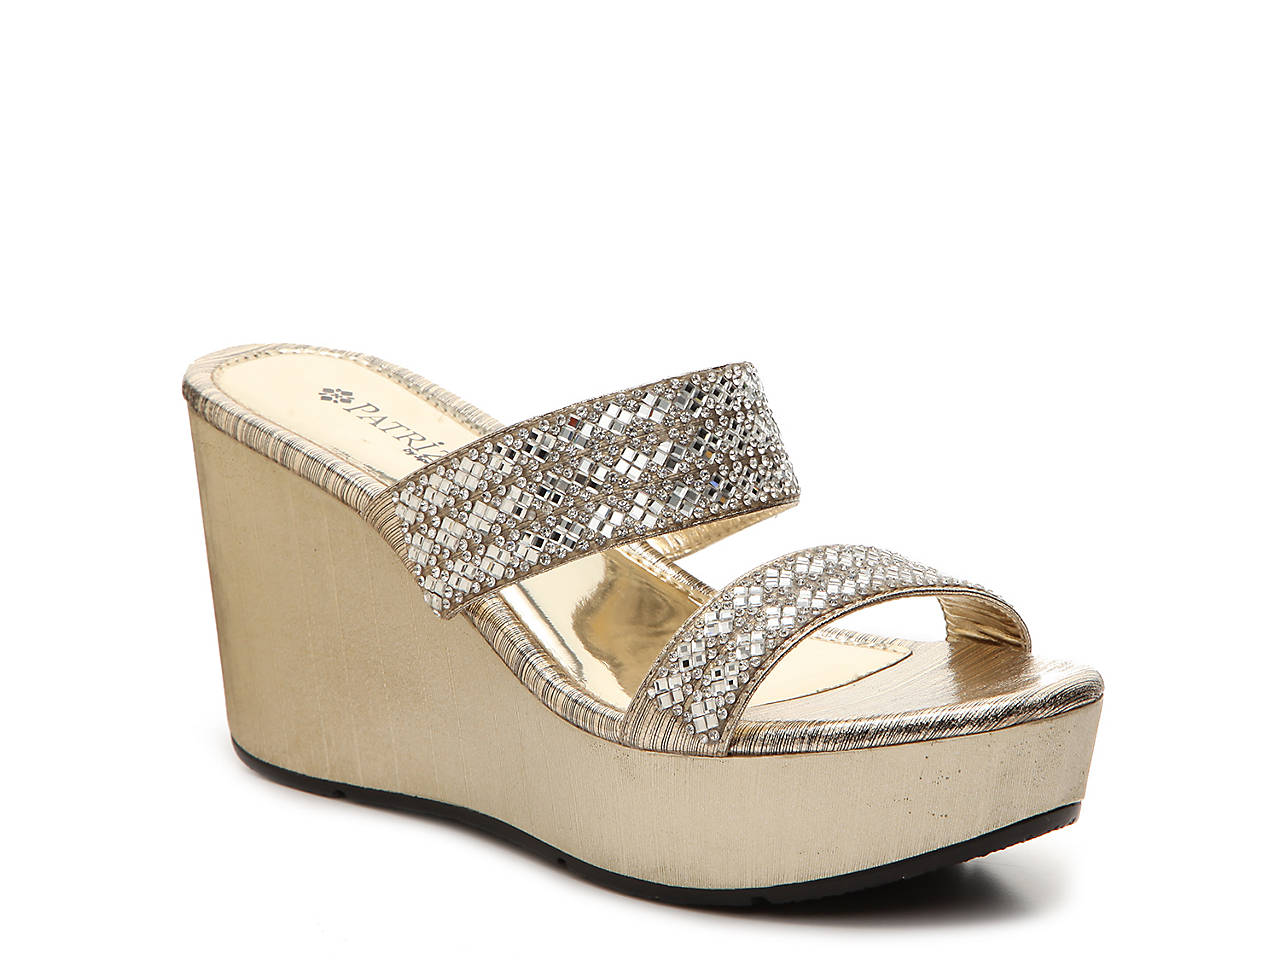 c87d72ad77a1 Patrizia by Spring Step Tanuja Wedge Sandal Women s Shoes